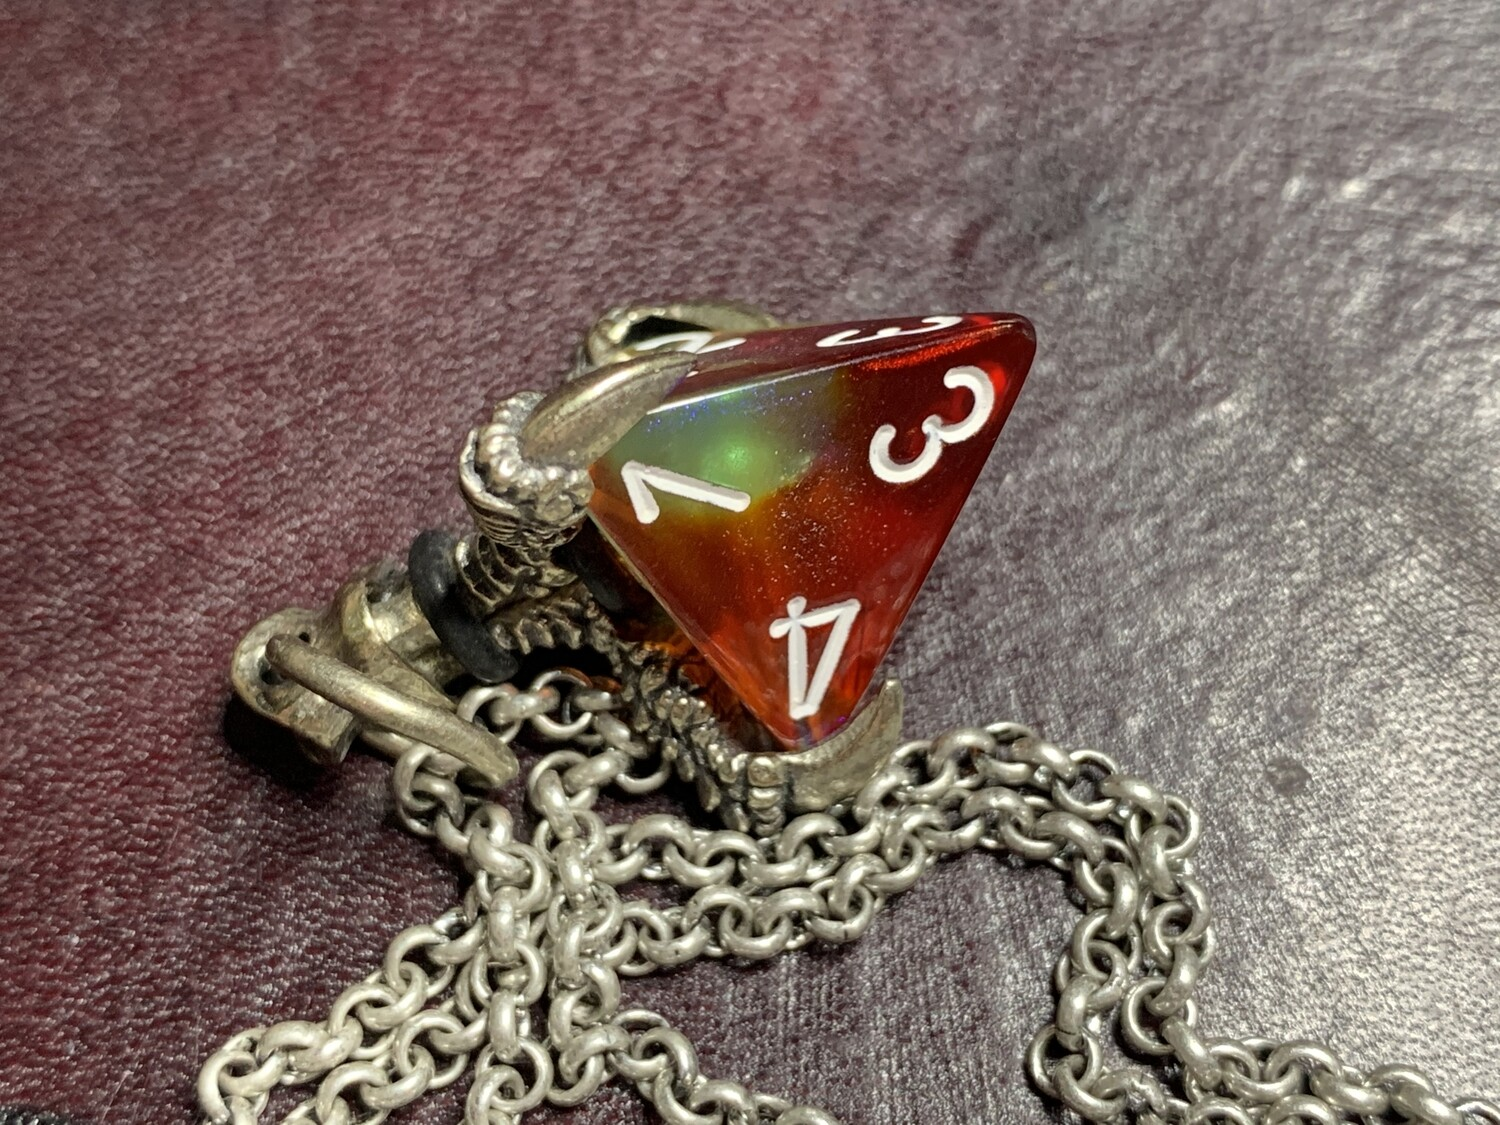 Chessex 16mm Dice Pendant Old Silver with Butterfly D4 Die Tabletop RPG Gaming